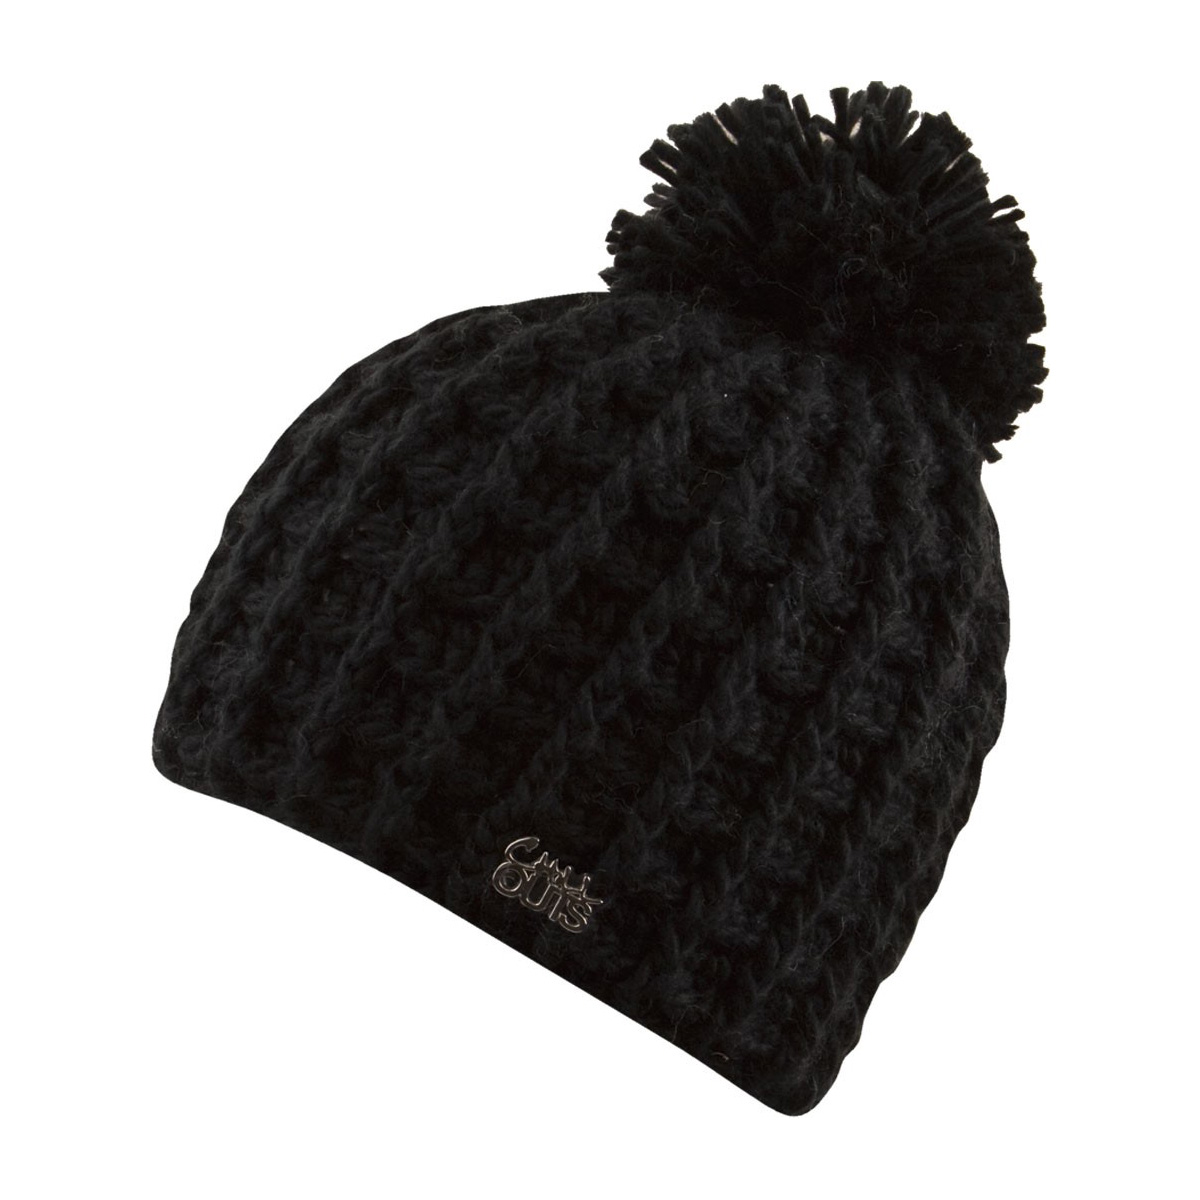 CHILLOUTS Curt Beanie